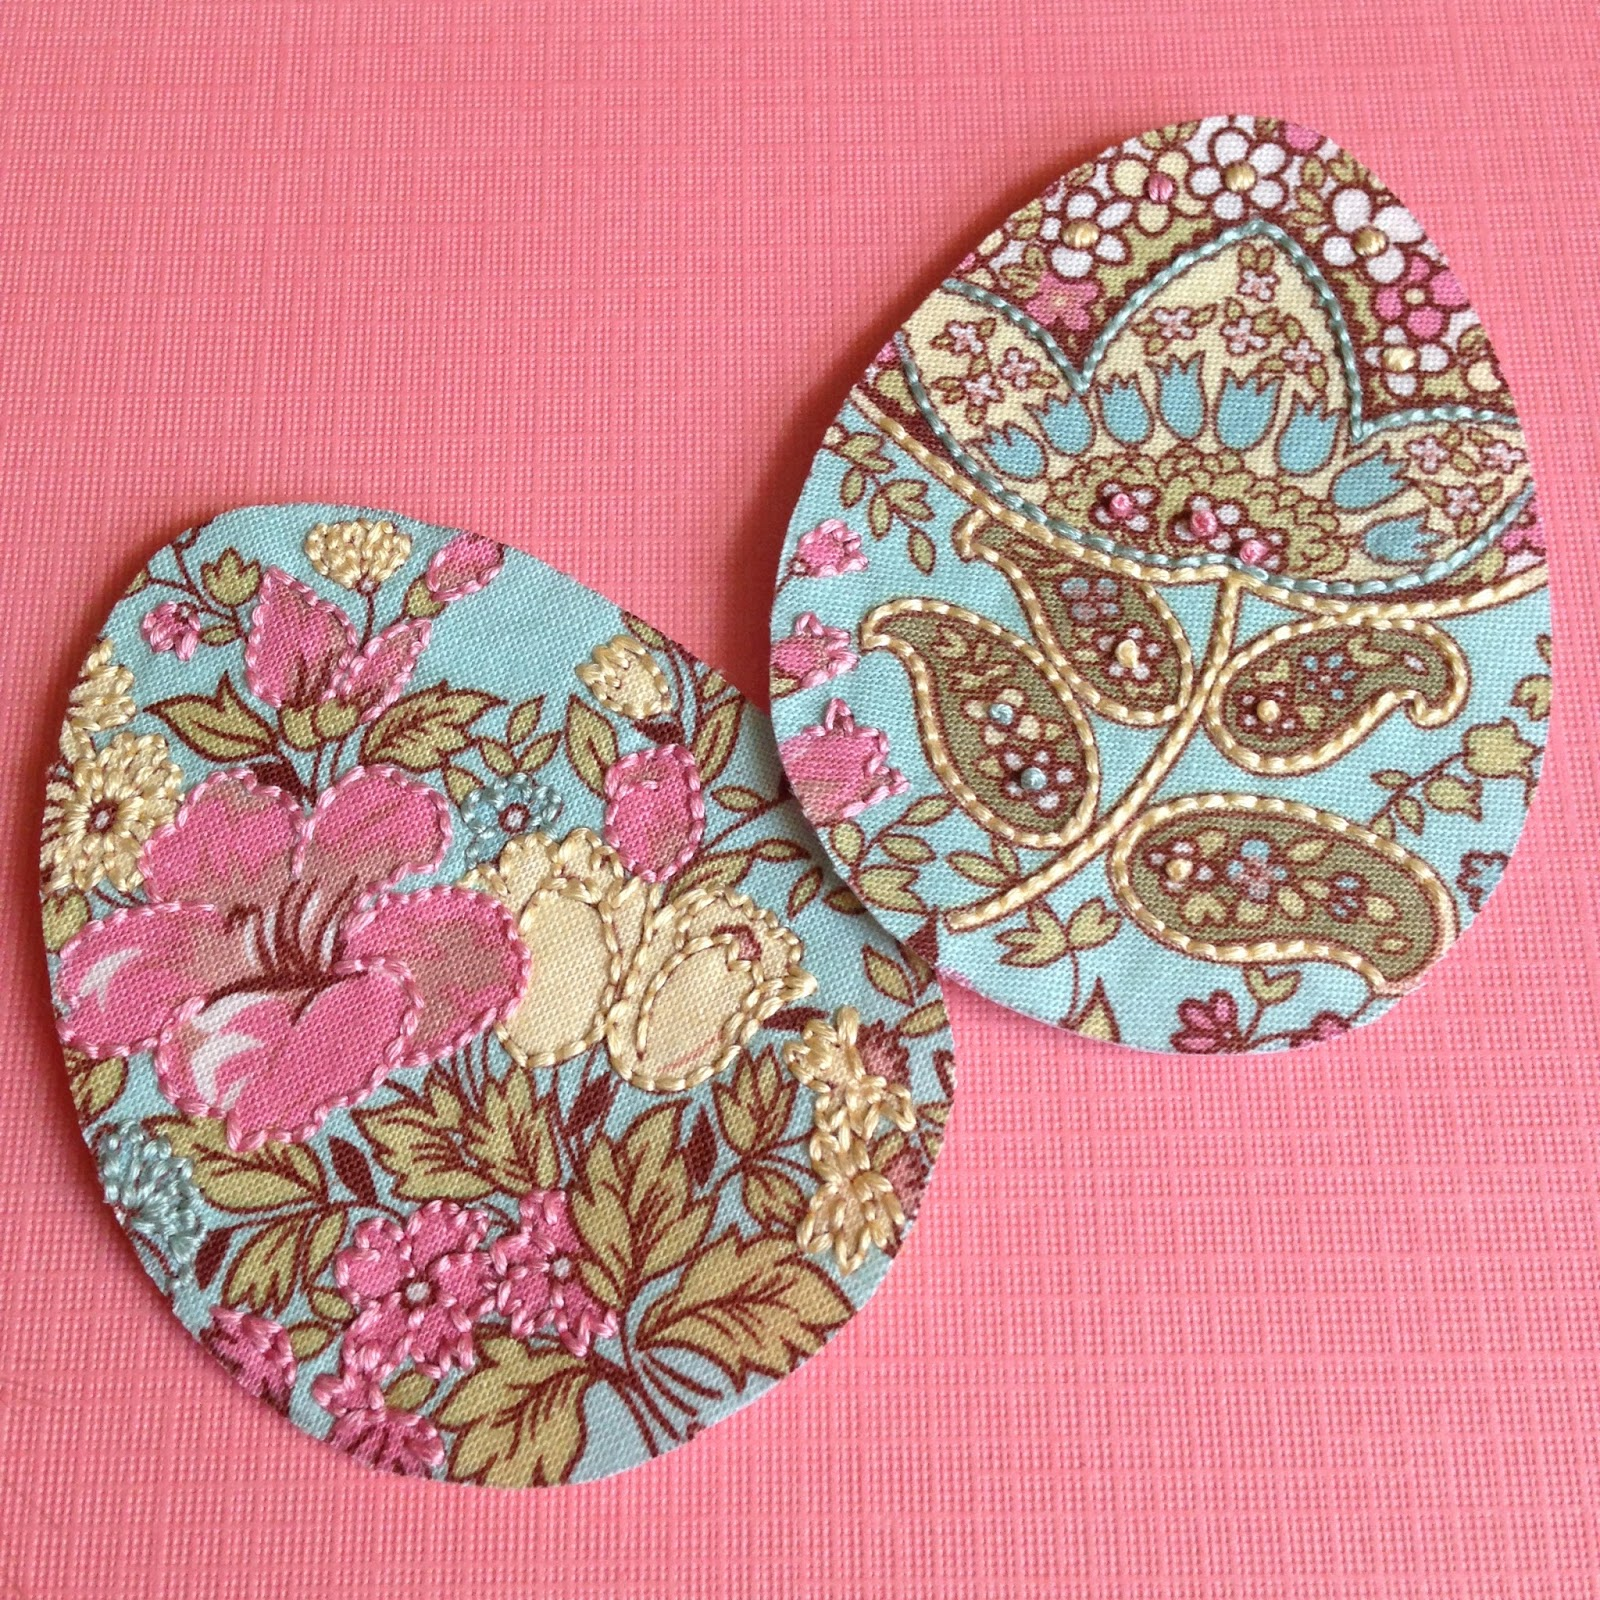 Kbb crafts stitches embroidered easter egg tags